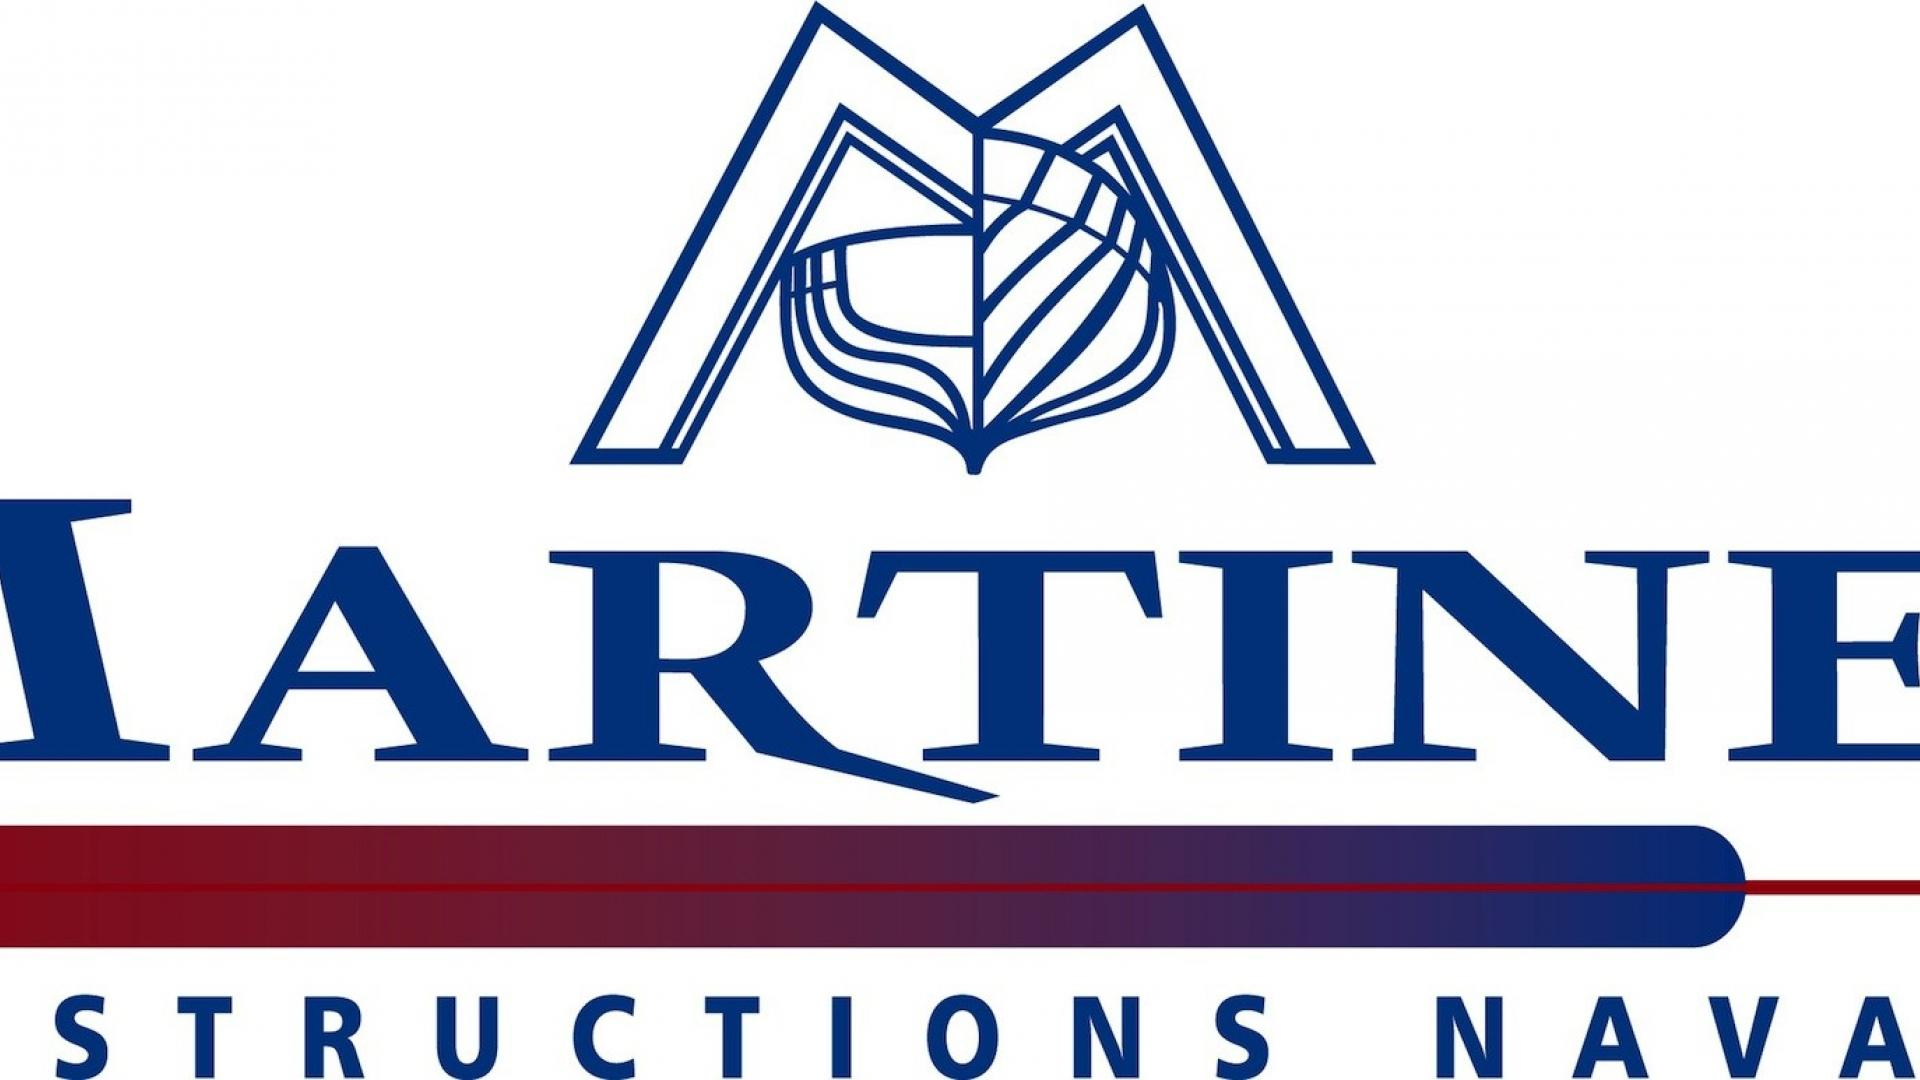 MARTINEZ CONSTRUCTION NAVALE